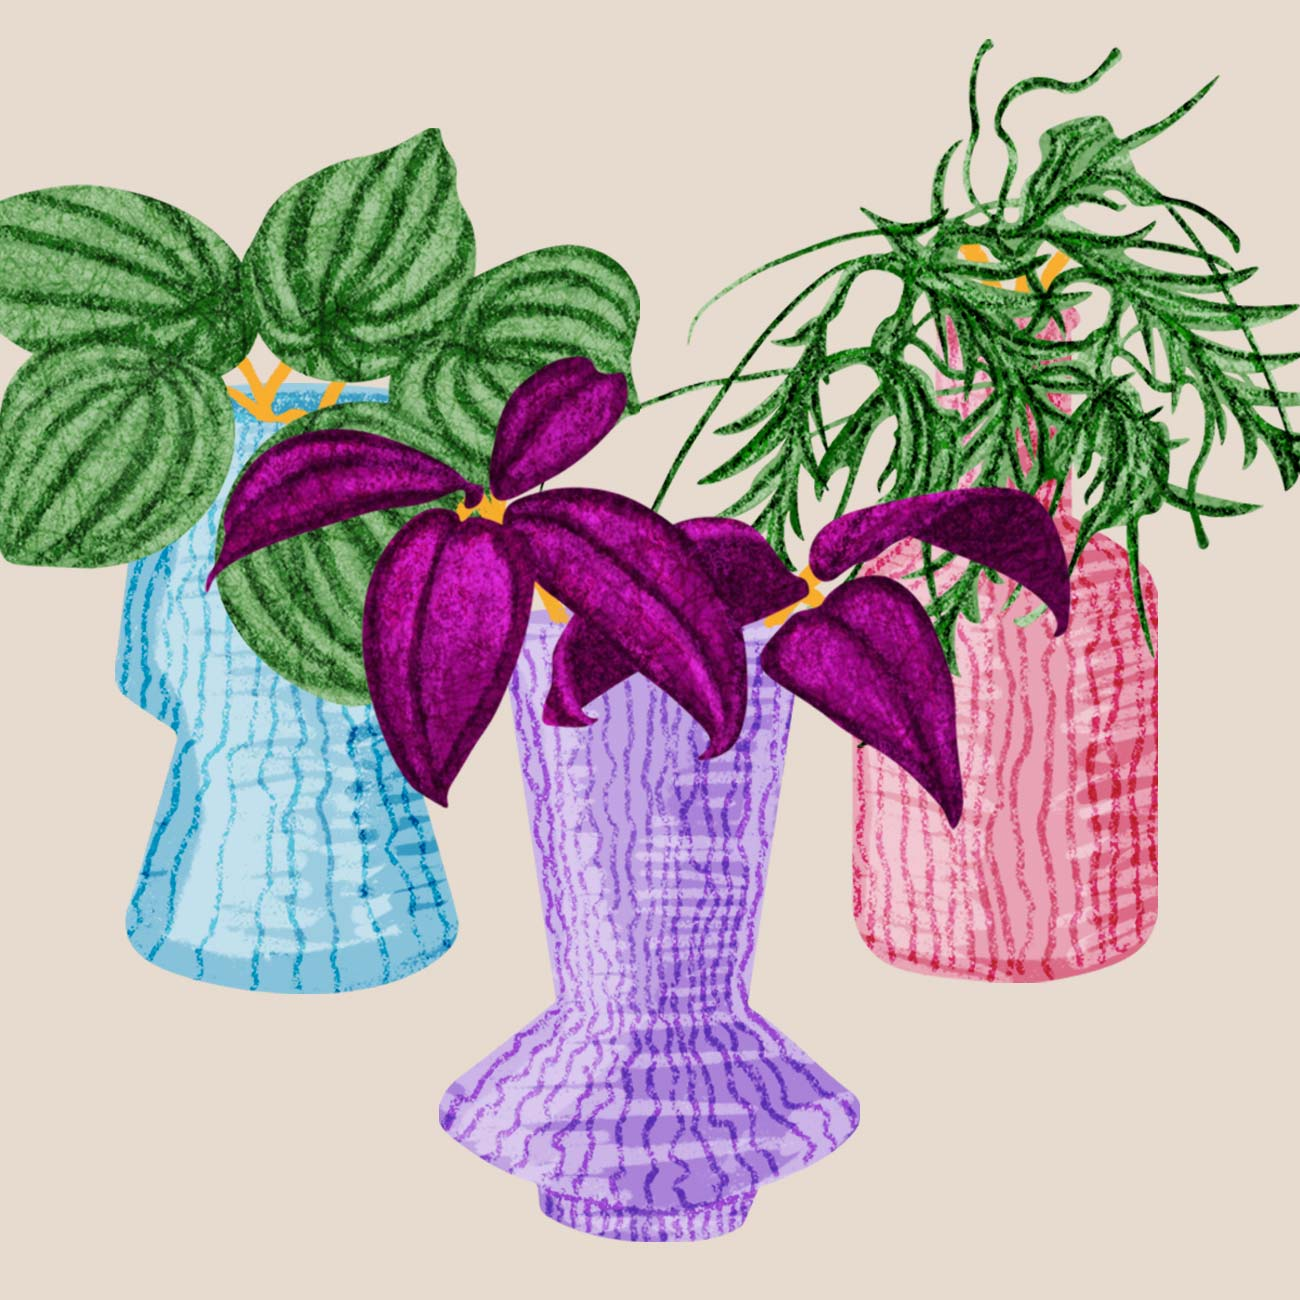 An illustration of houseplants for Pacific Place Hong Kong